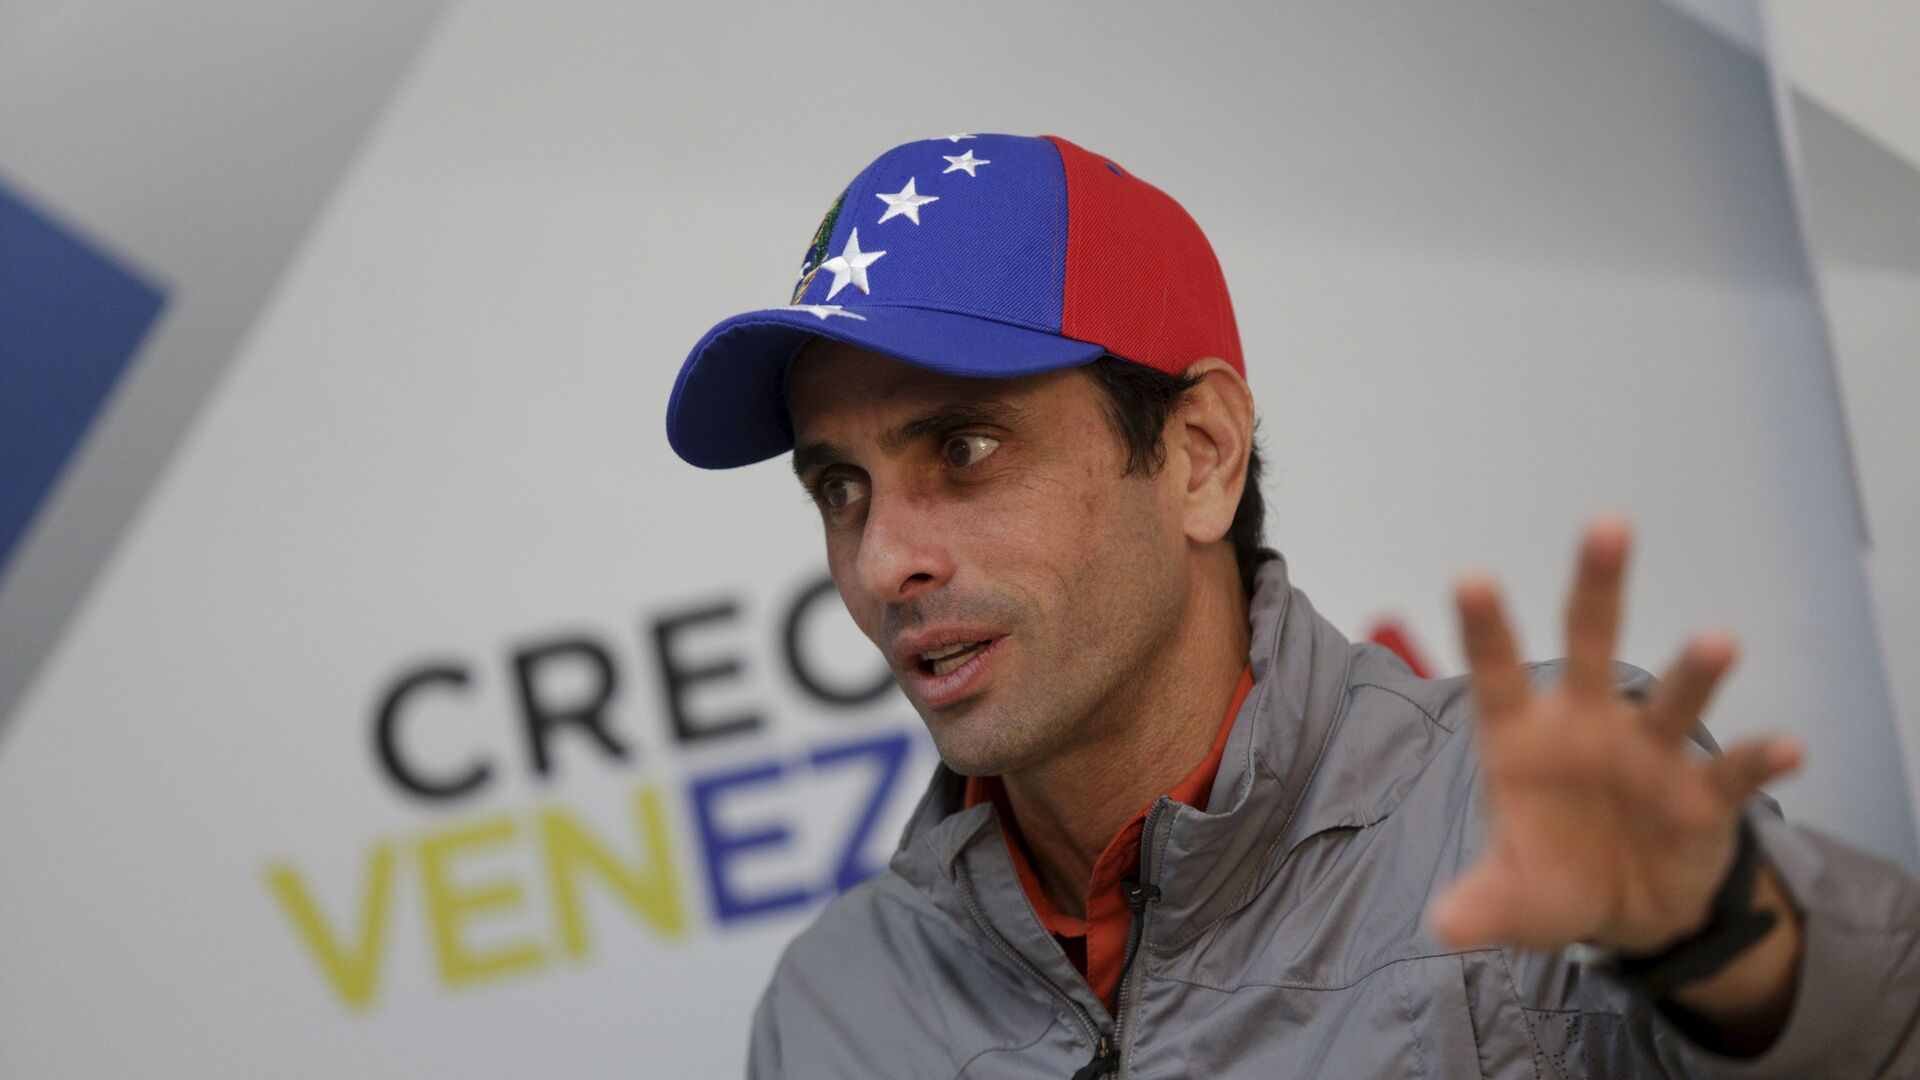 Venezuelan opposition leader and Governor of Miranda state Henrique Capriles speaks during an interview with Reuters in Caracas - Sputnik Mundo, 1920, 11.08.2021